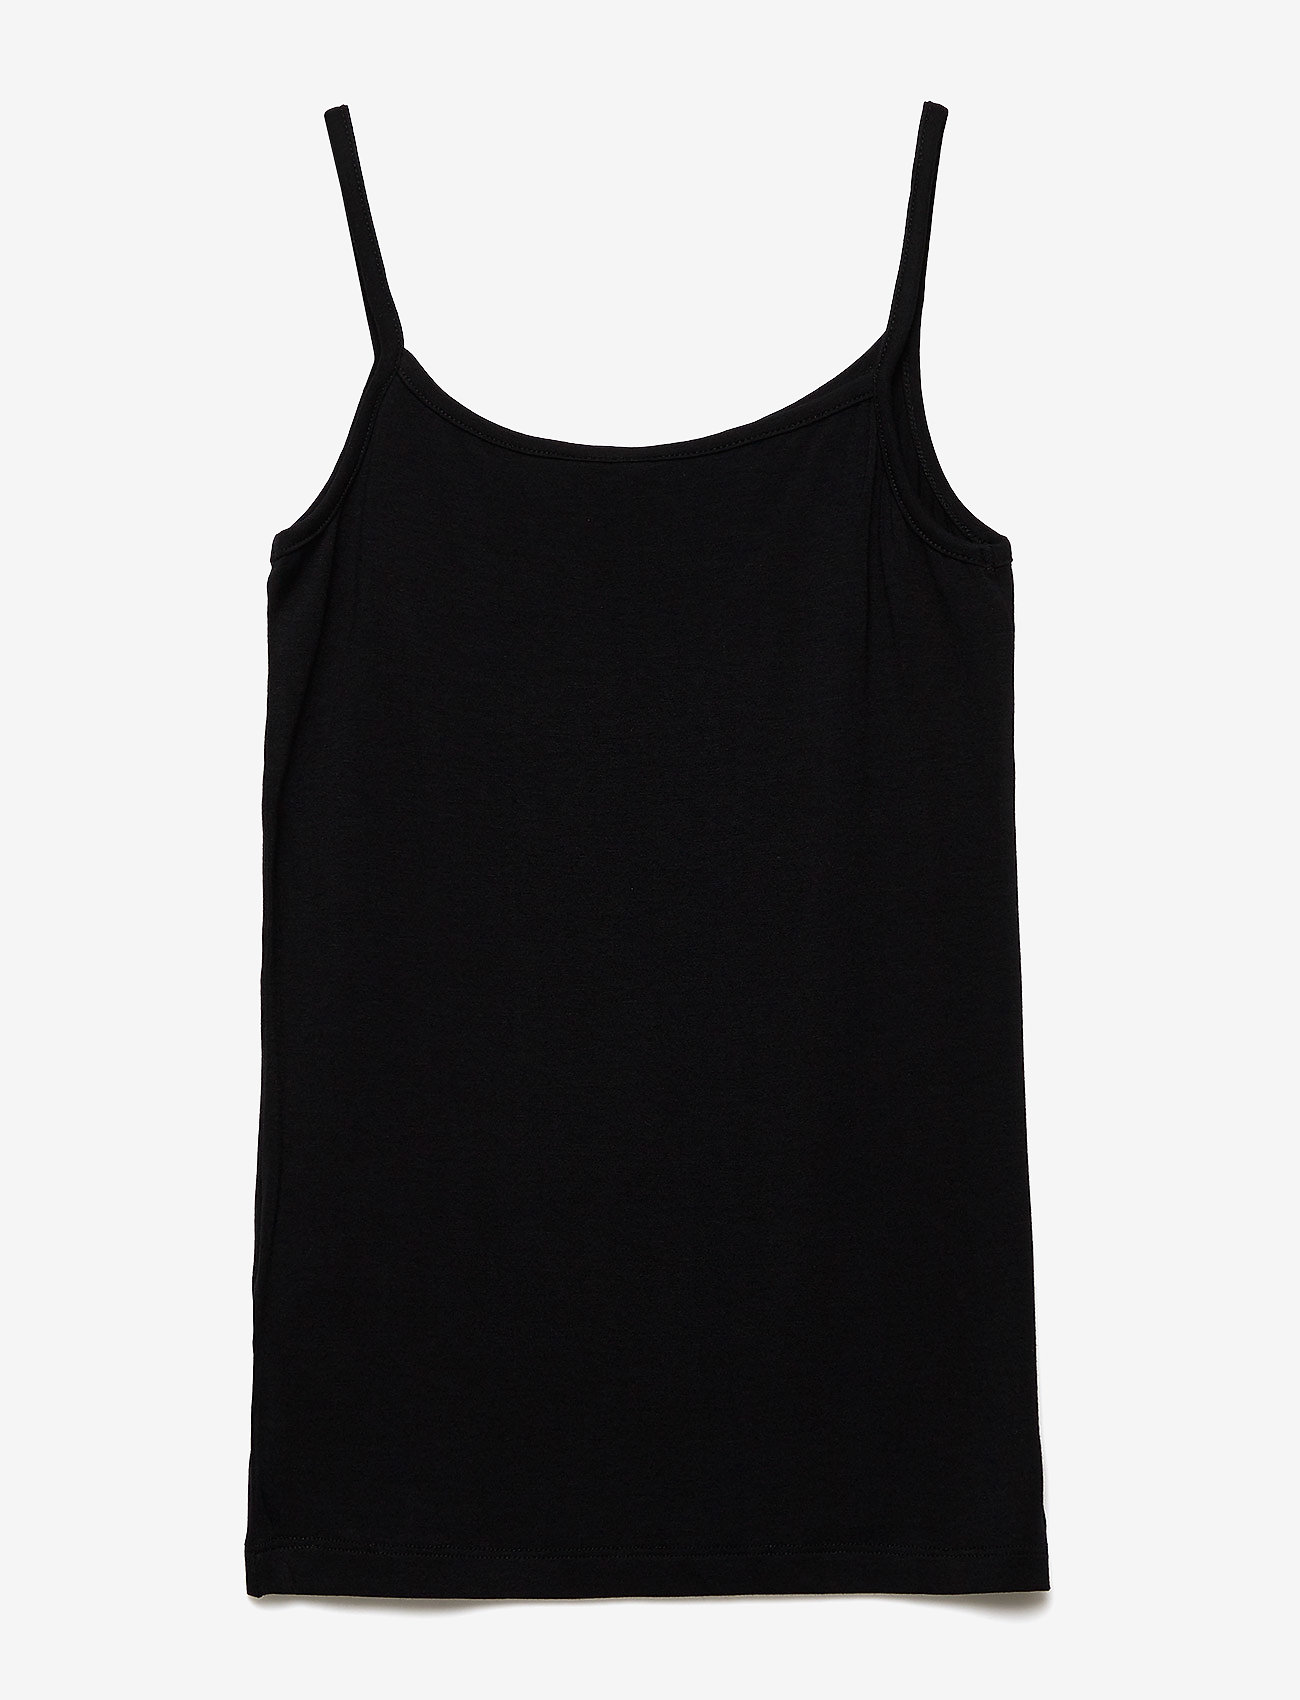 The New - ANUKA TANK TOP - tops - black - 1